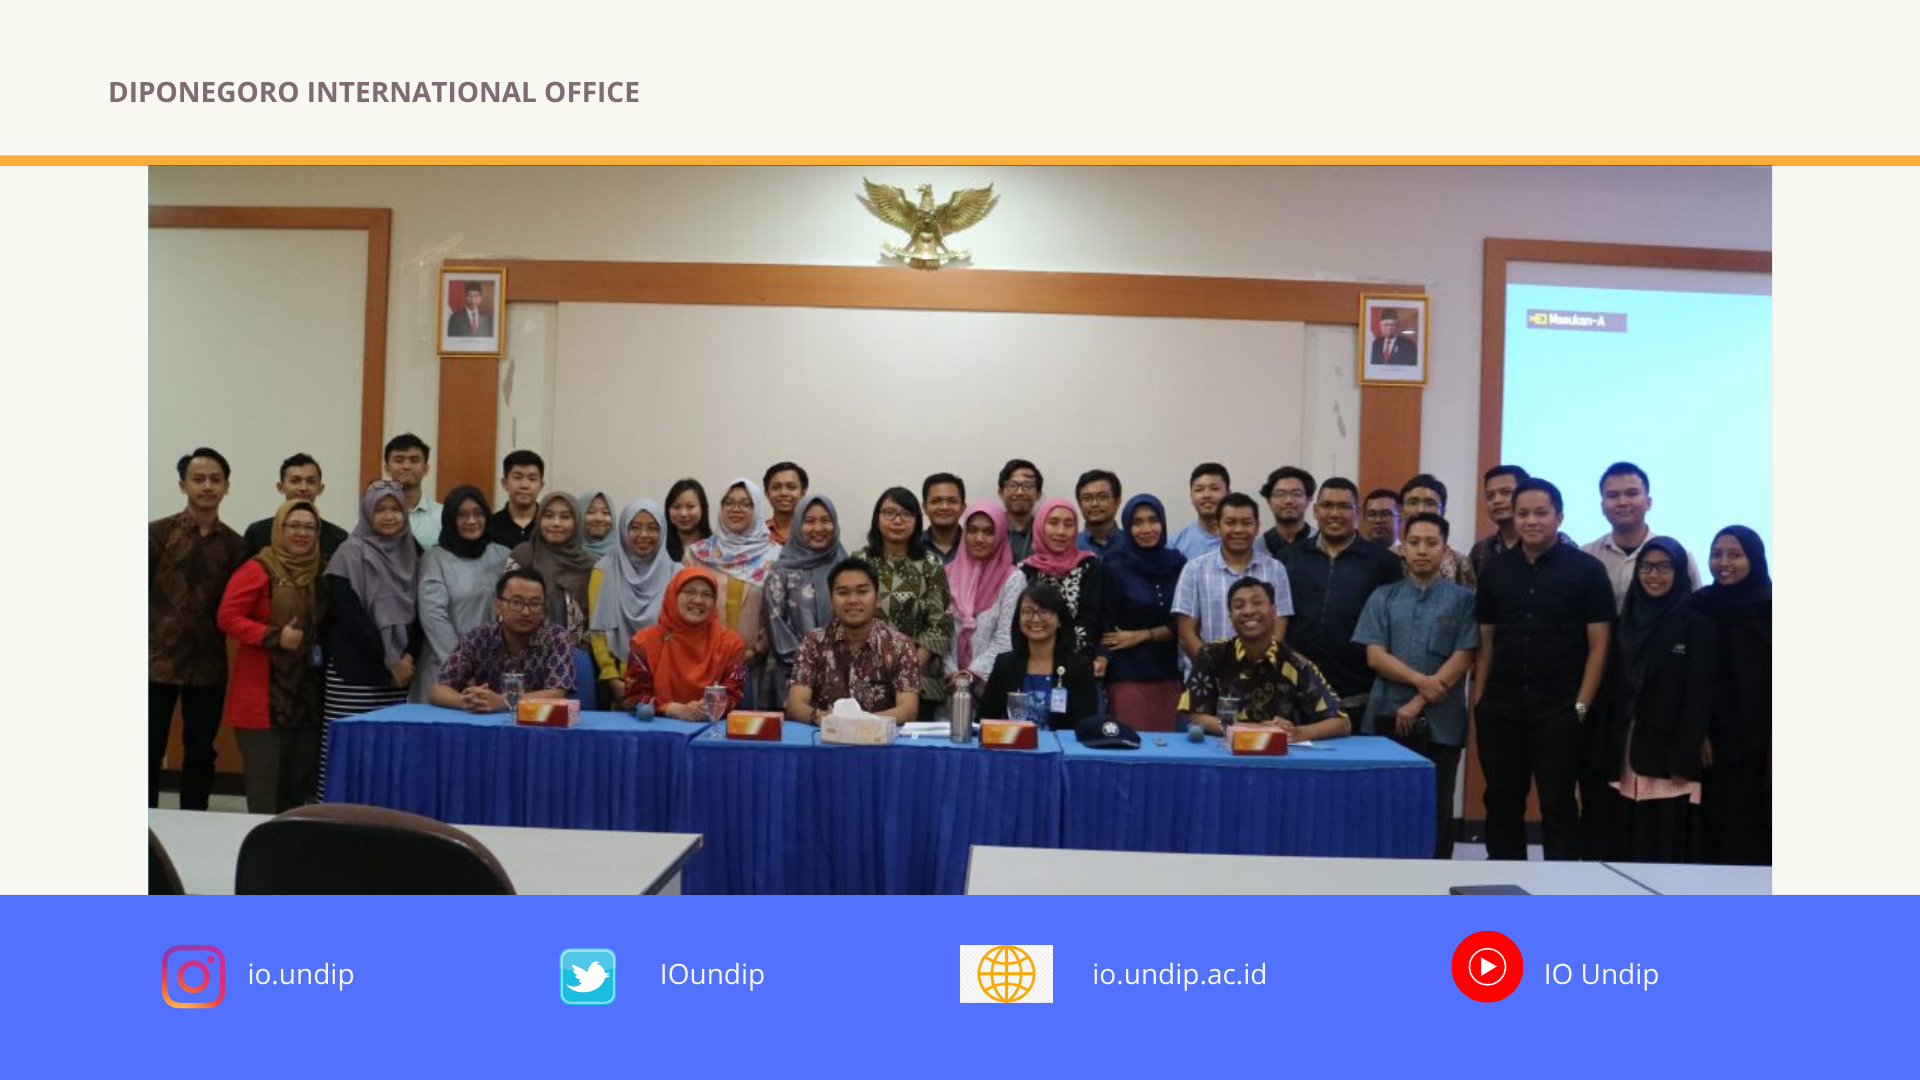 Diponegoro International Office holds Taiwan Education Expo 2020